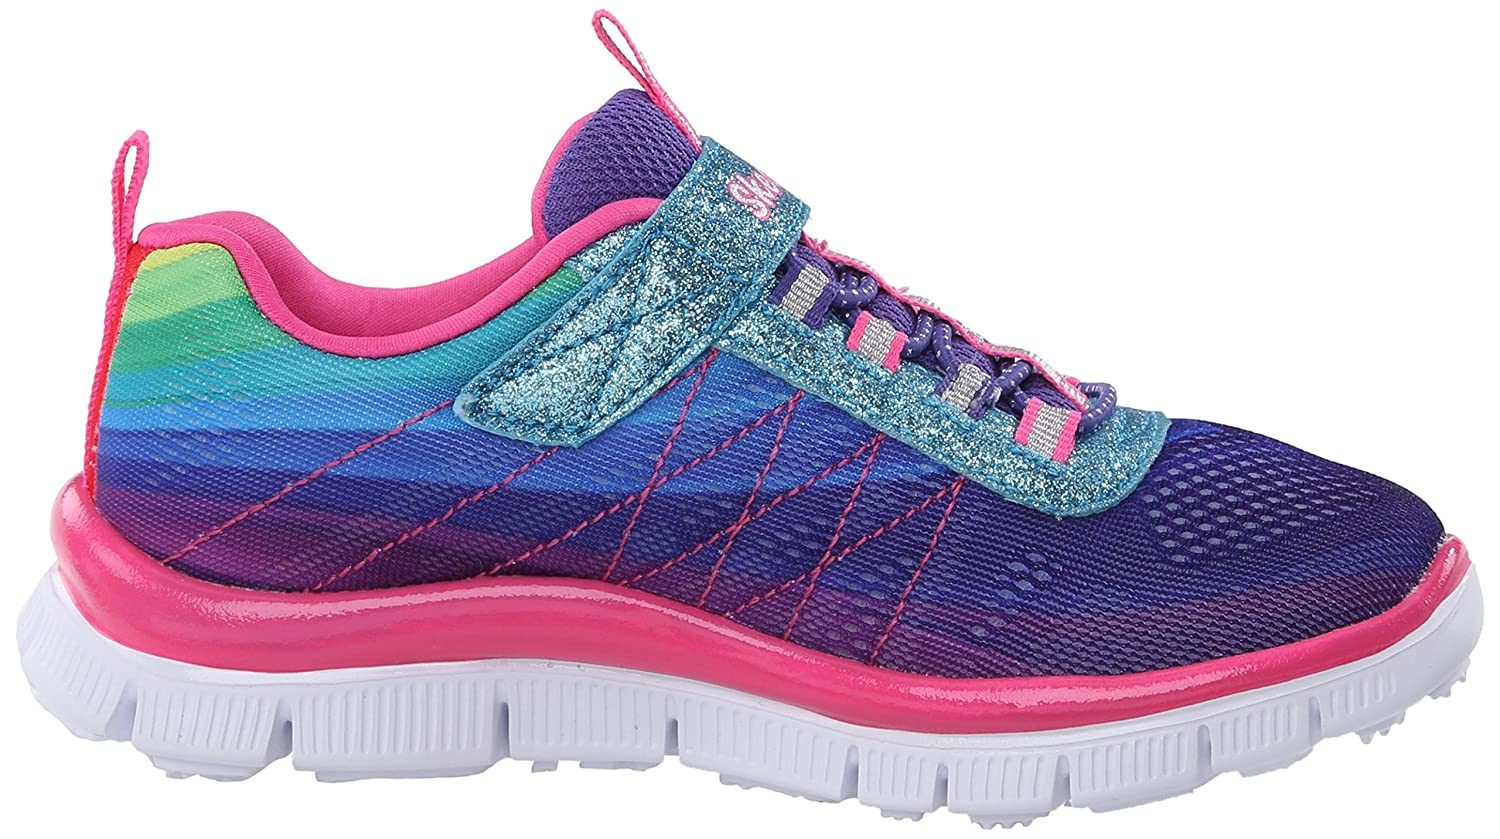 Skechers Skech Appeal Perfect Picture, Scarpe pe Bambine e